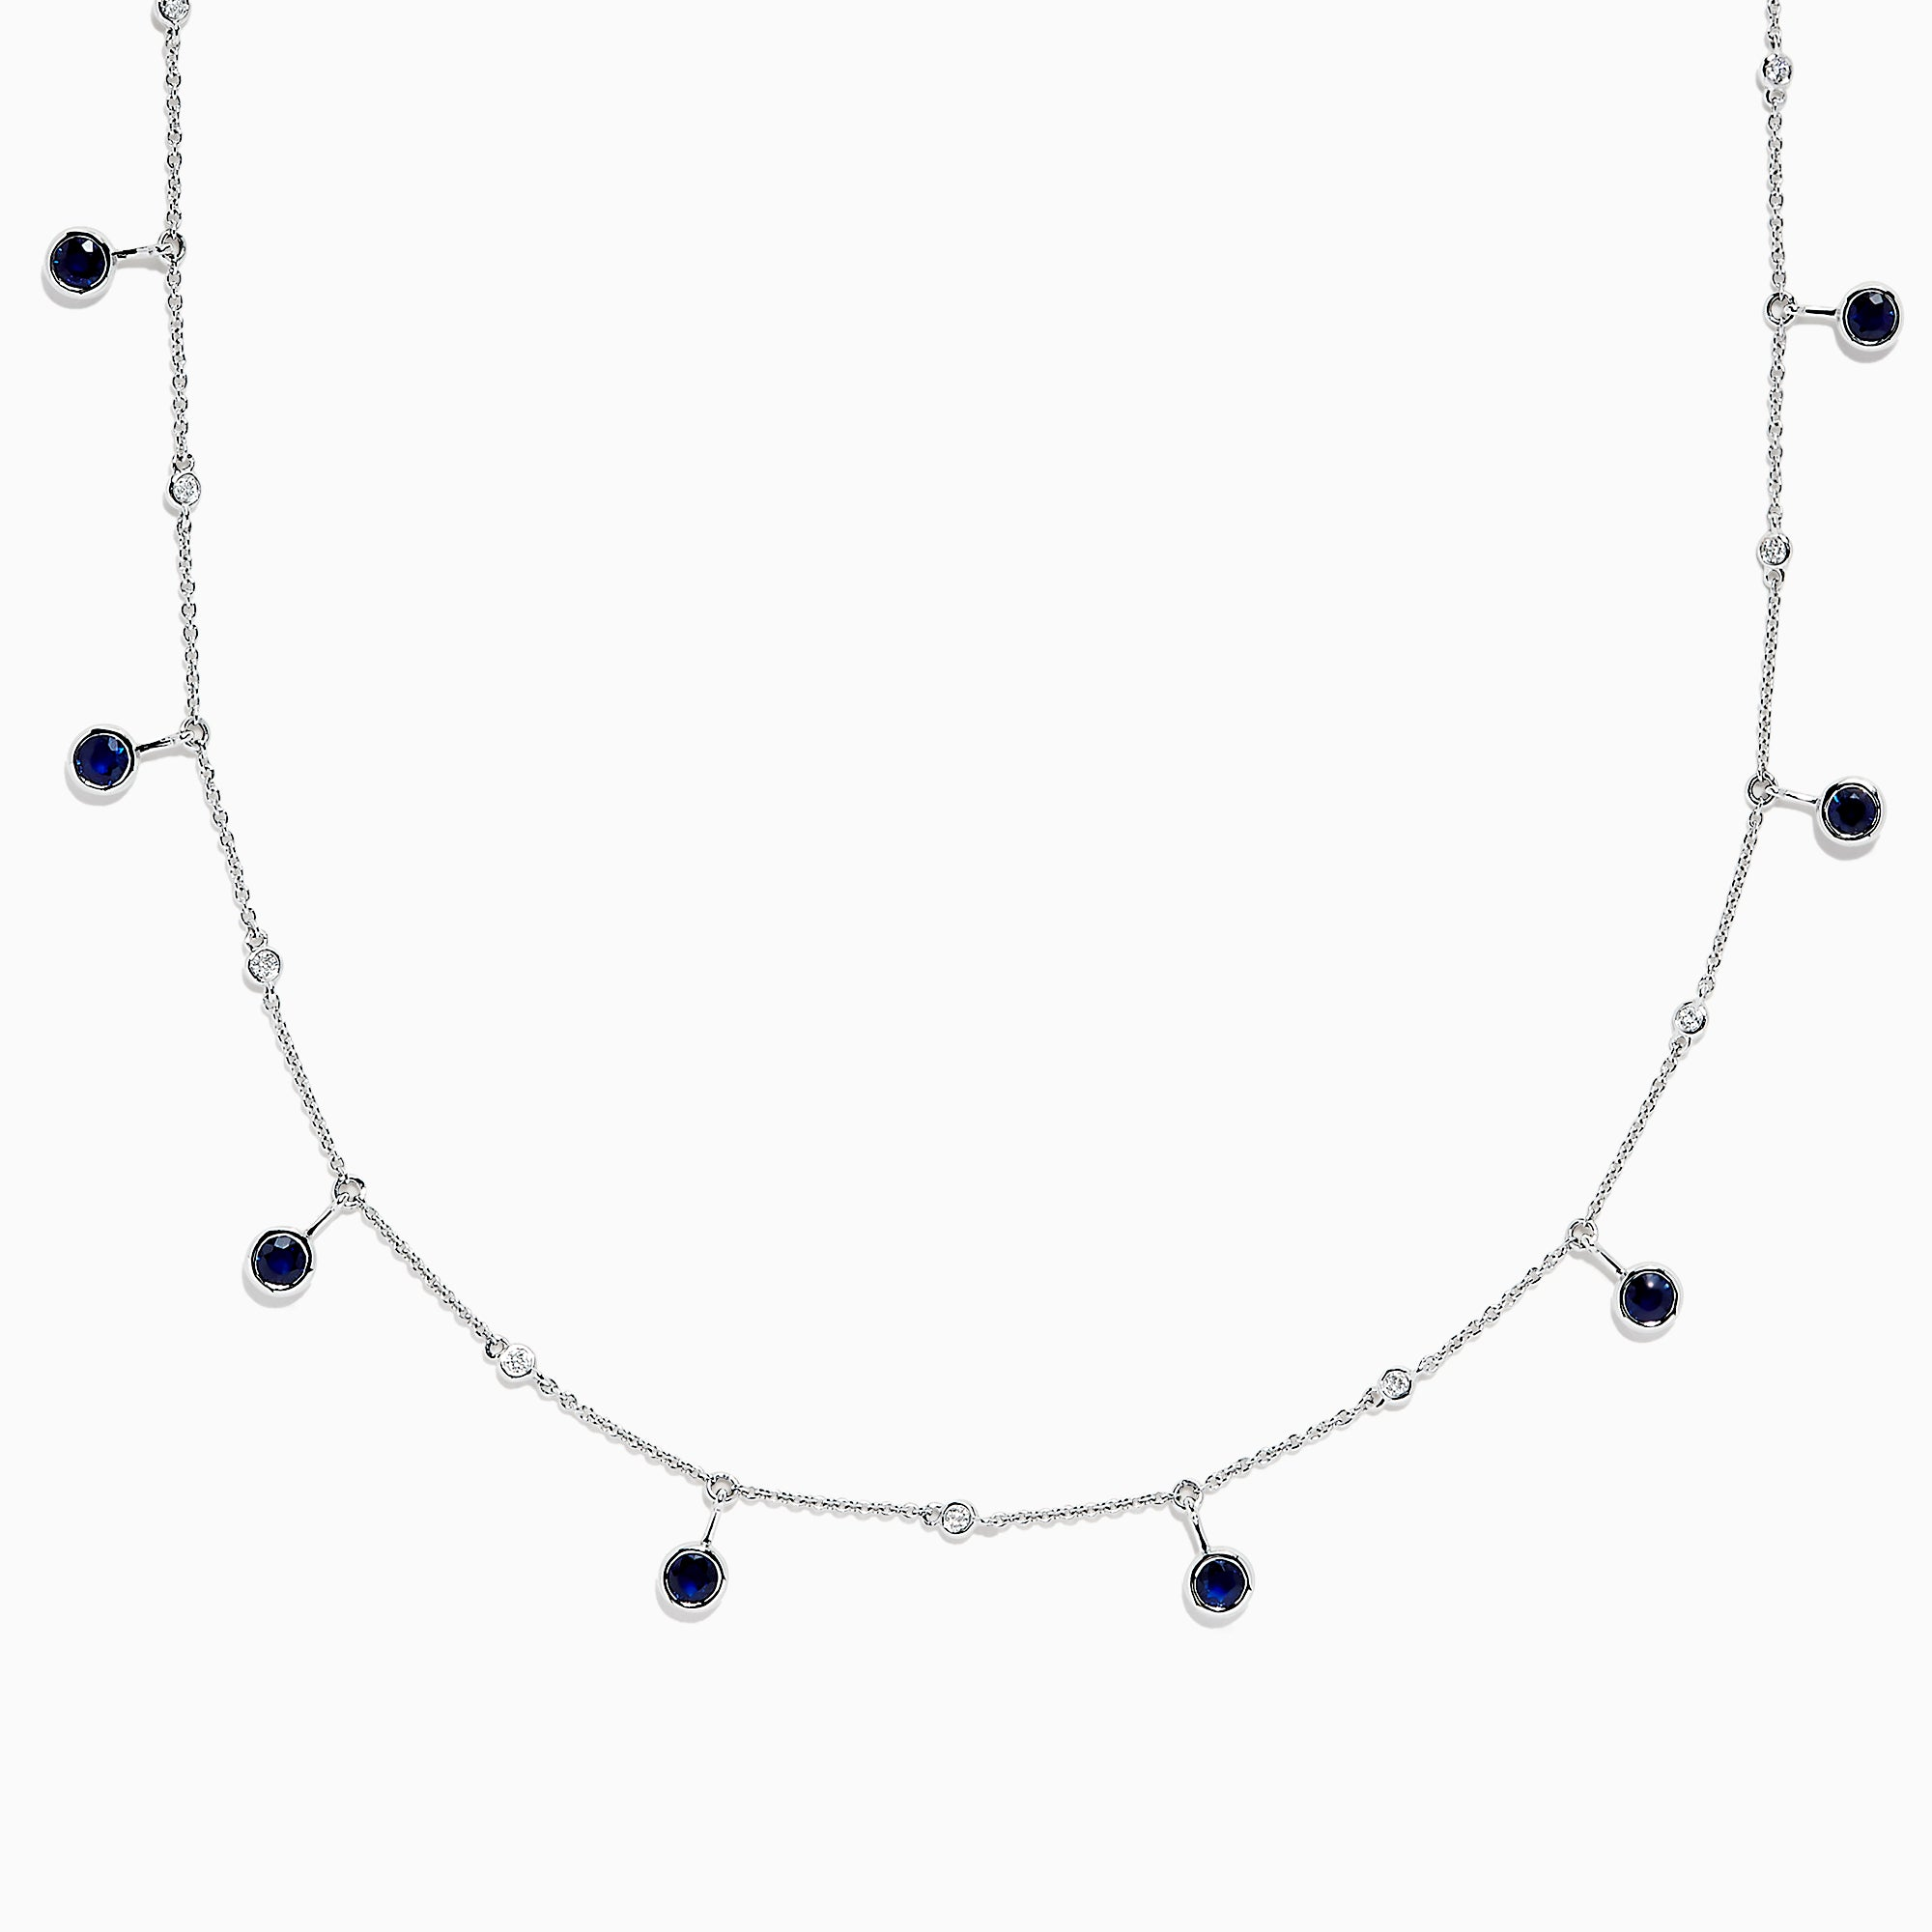 Effy 14K White Gold Sapphire and Diamond Station Necklace, 1.65 TCW